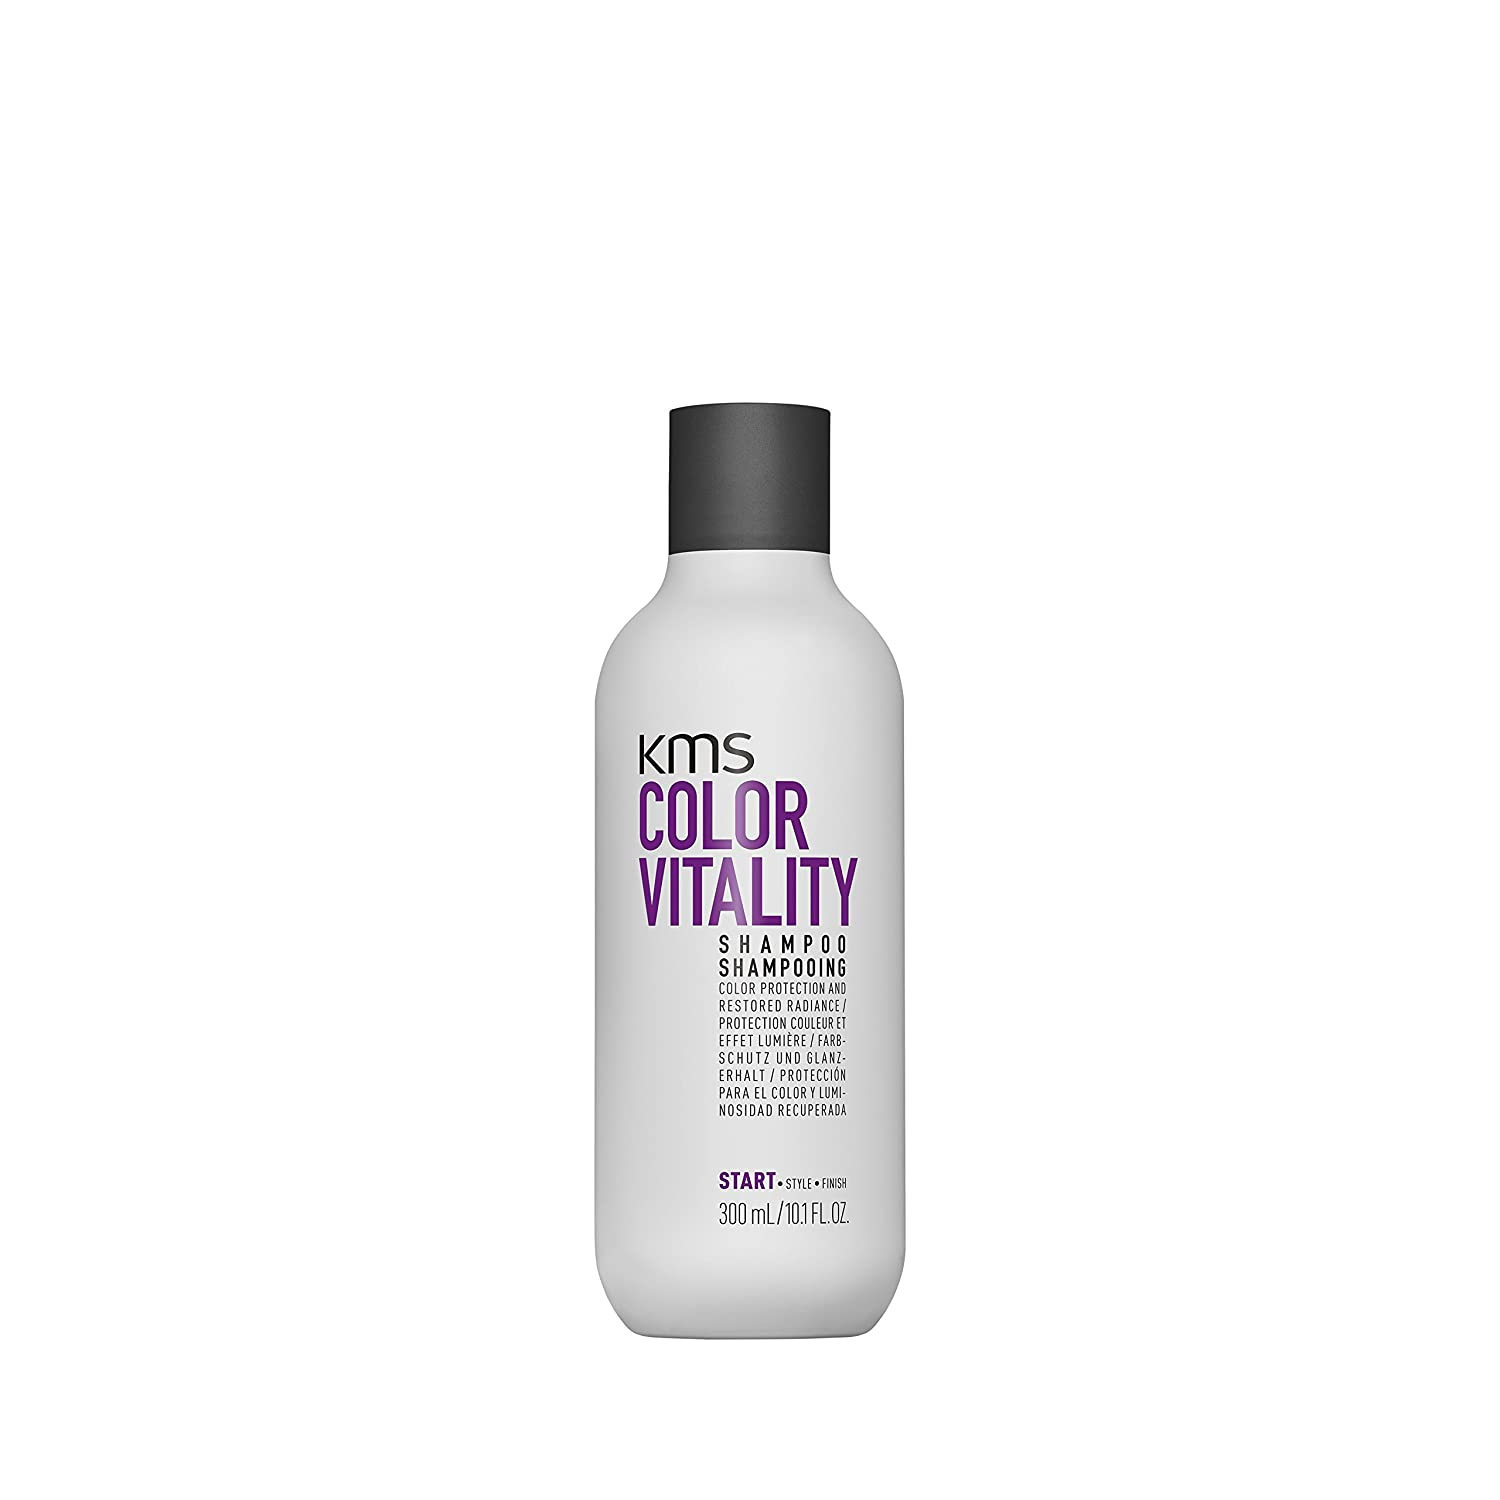 Color Vitality Shampoo (Color Protection & Restored Radiance) - 300ml/10.1oz Kms California